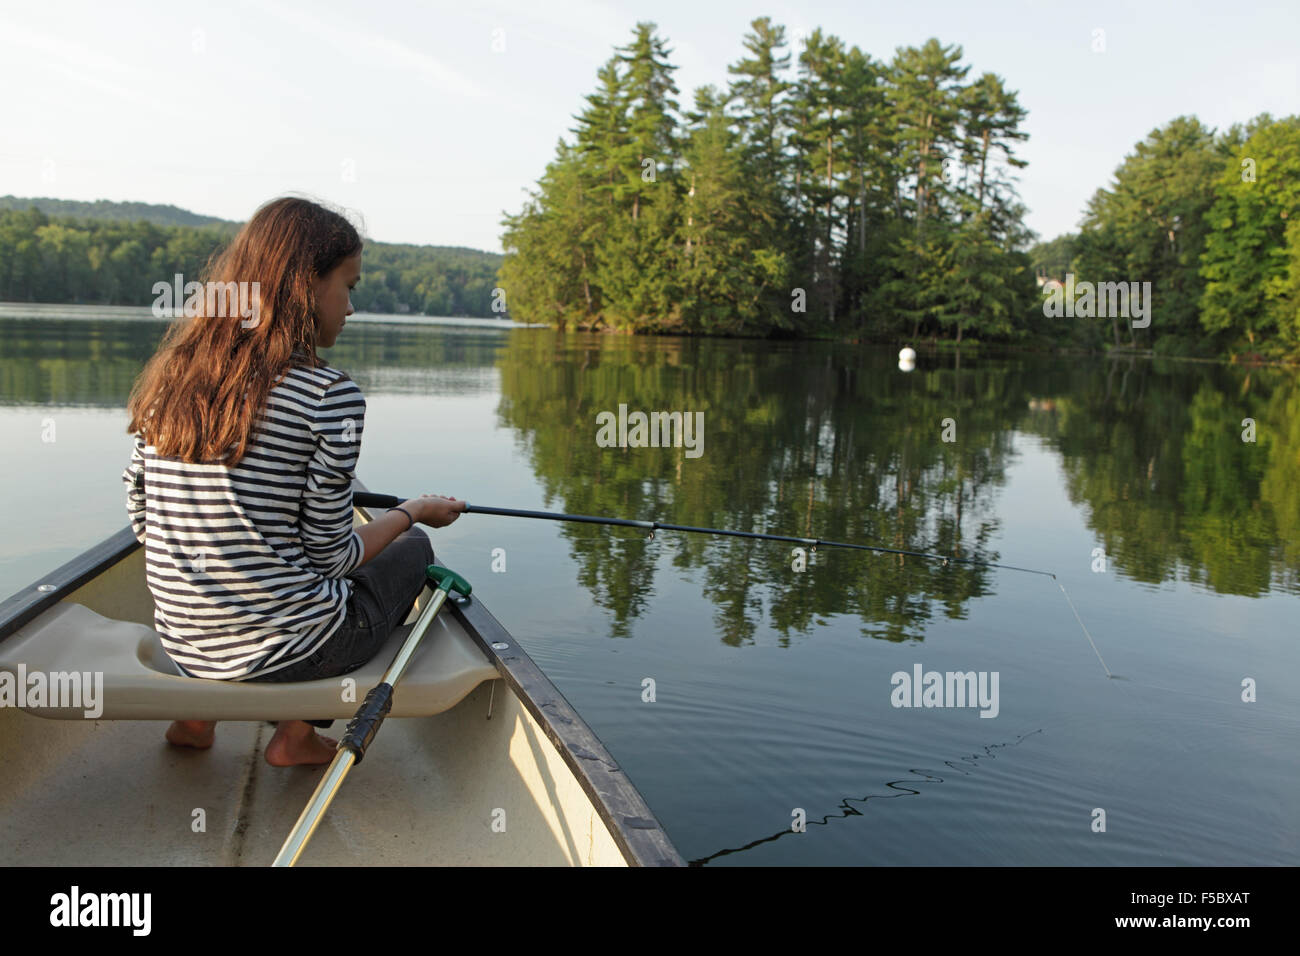 Young girl fishing from a canoe on a calm lake with trees in the background - Stock Image